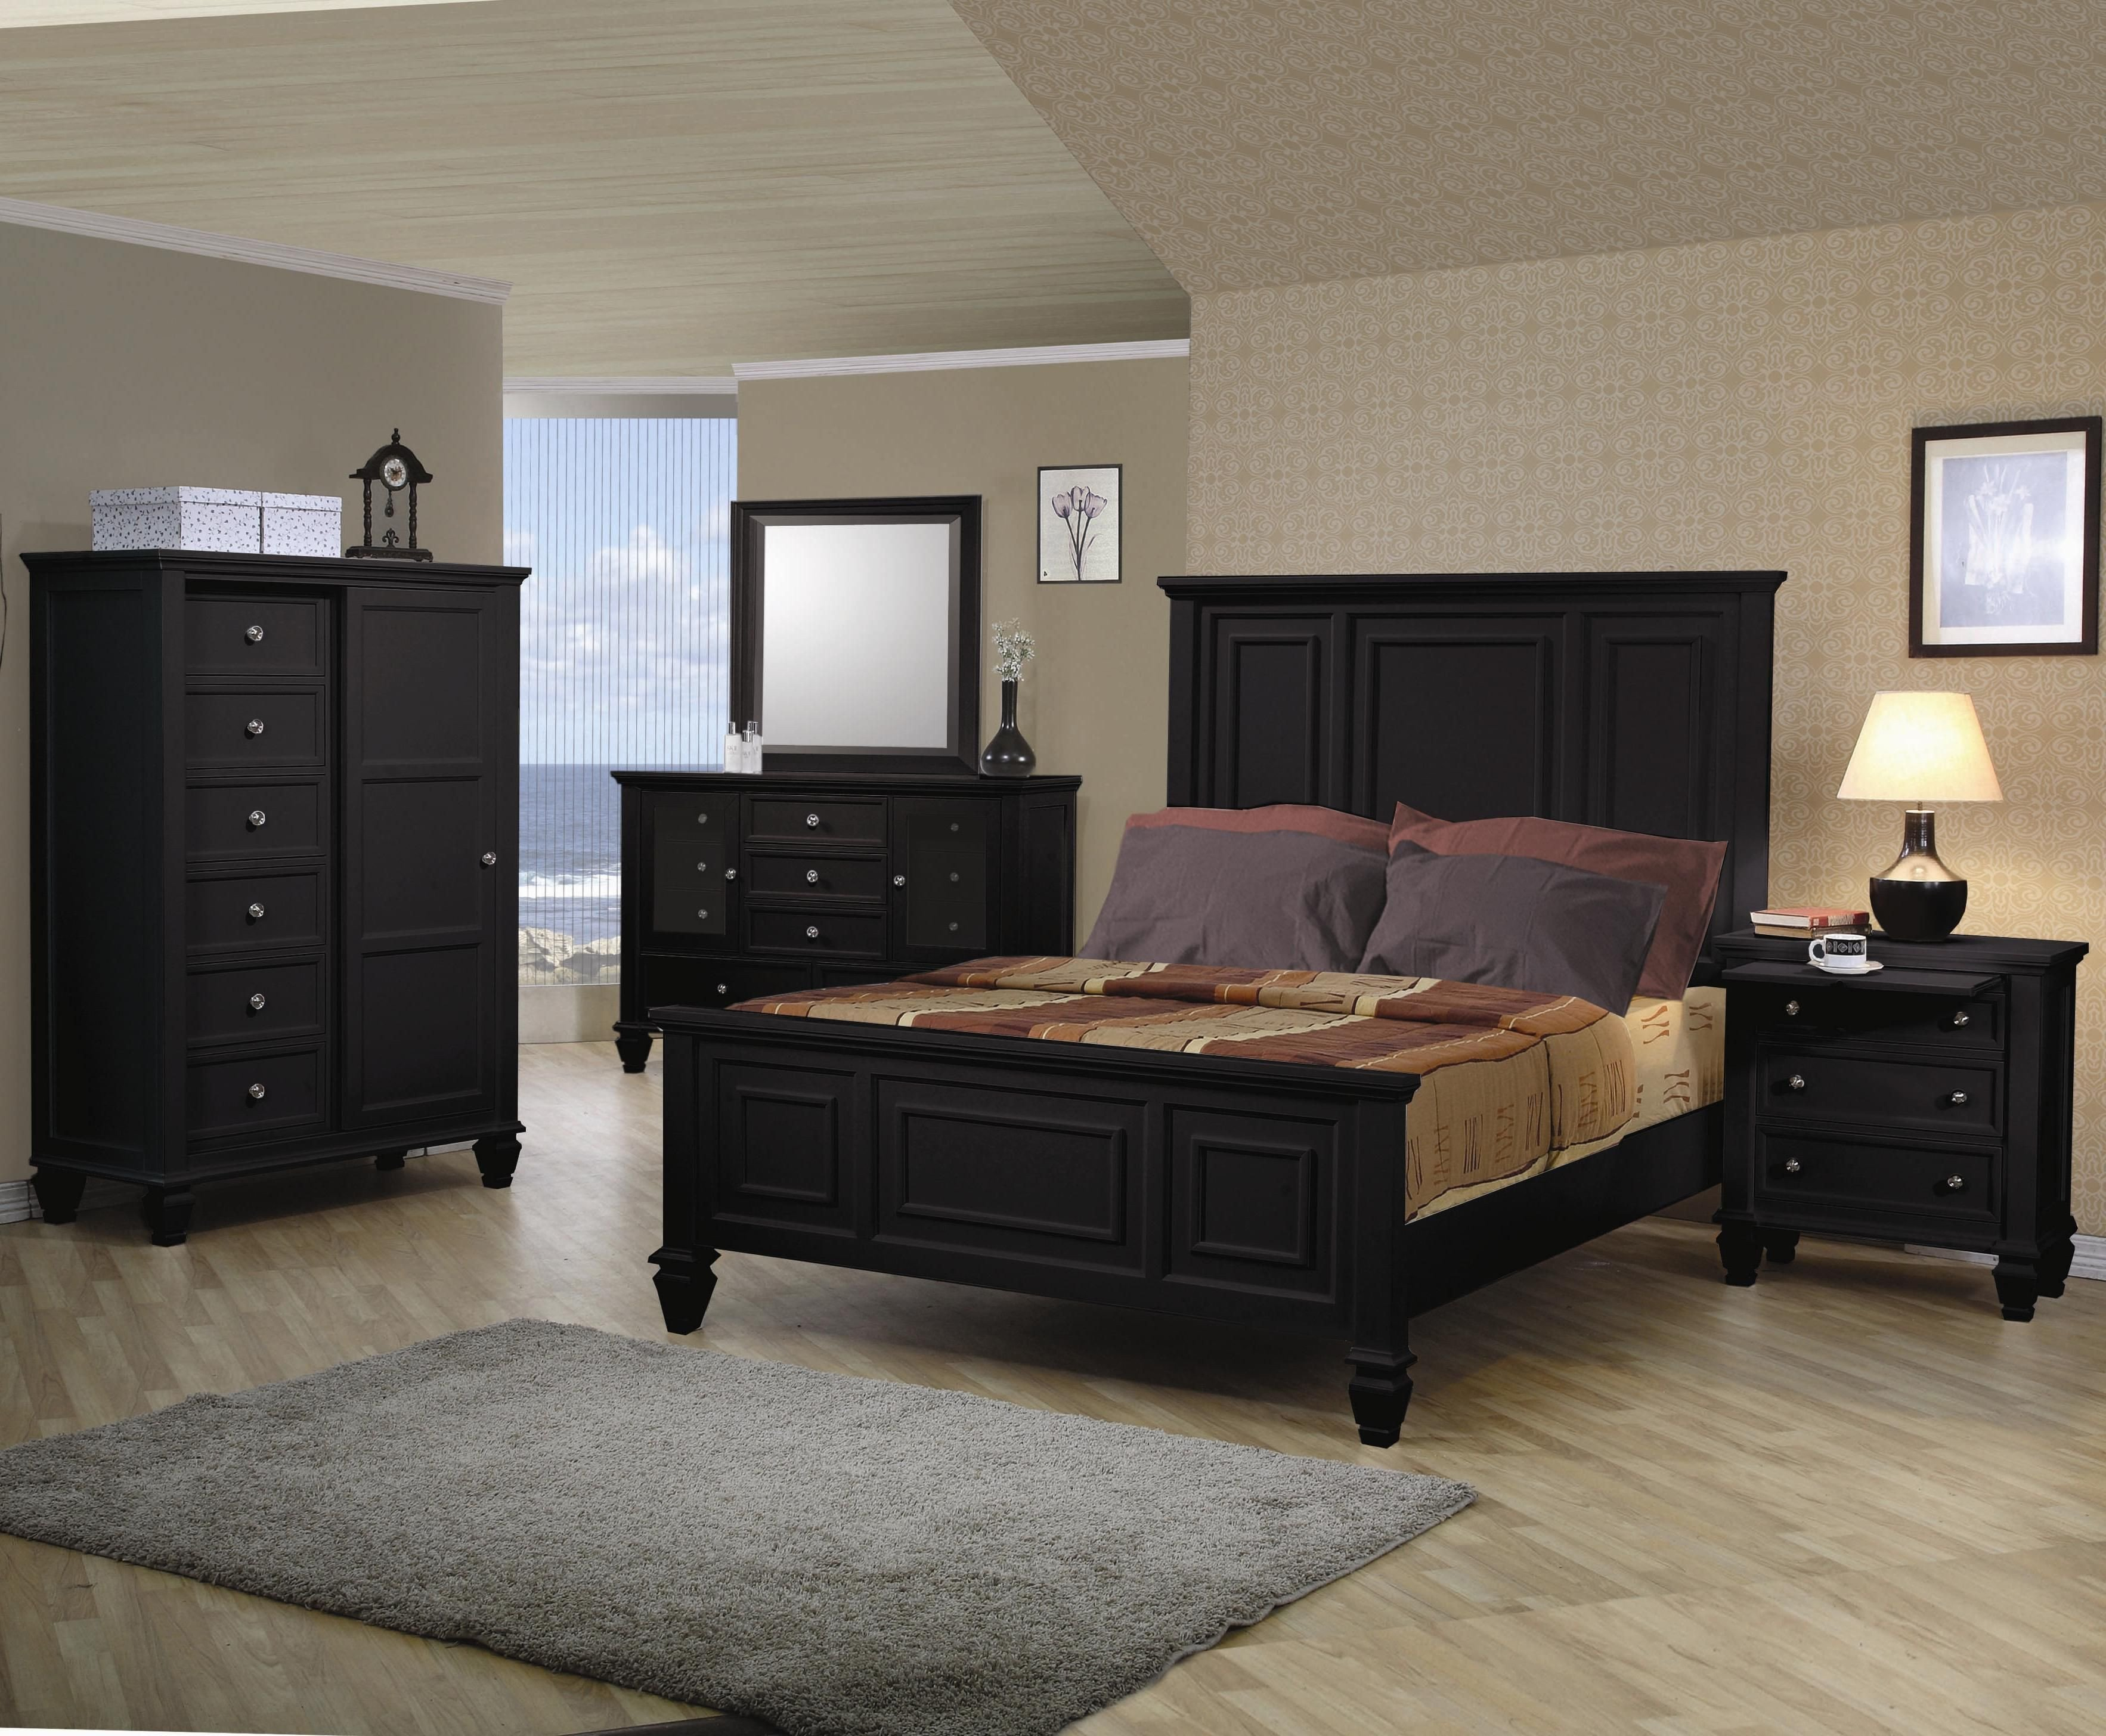 Used King Size Bedroom Set New Pin On for the Bedroom